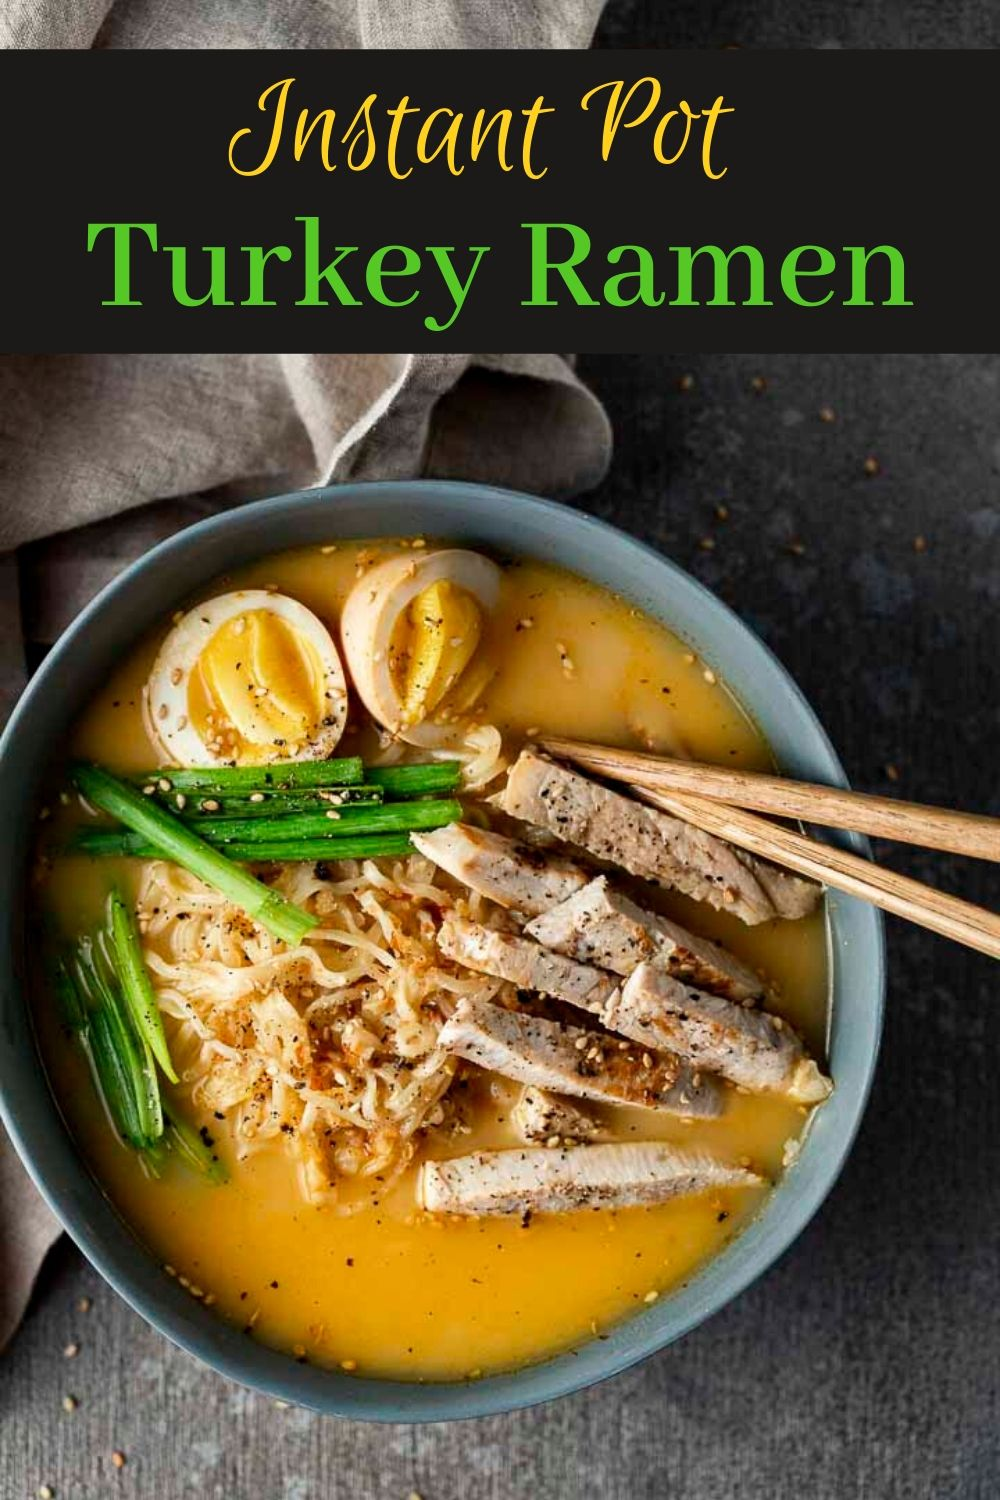 Leftover Turkey Ramen (Instant Pot)